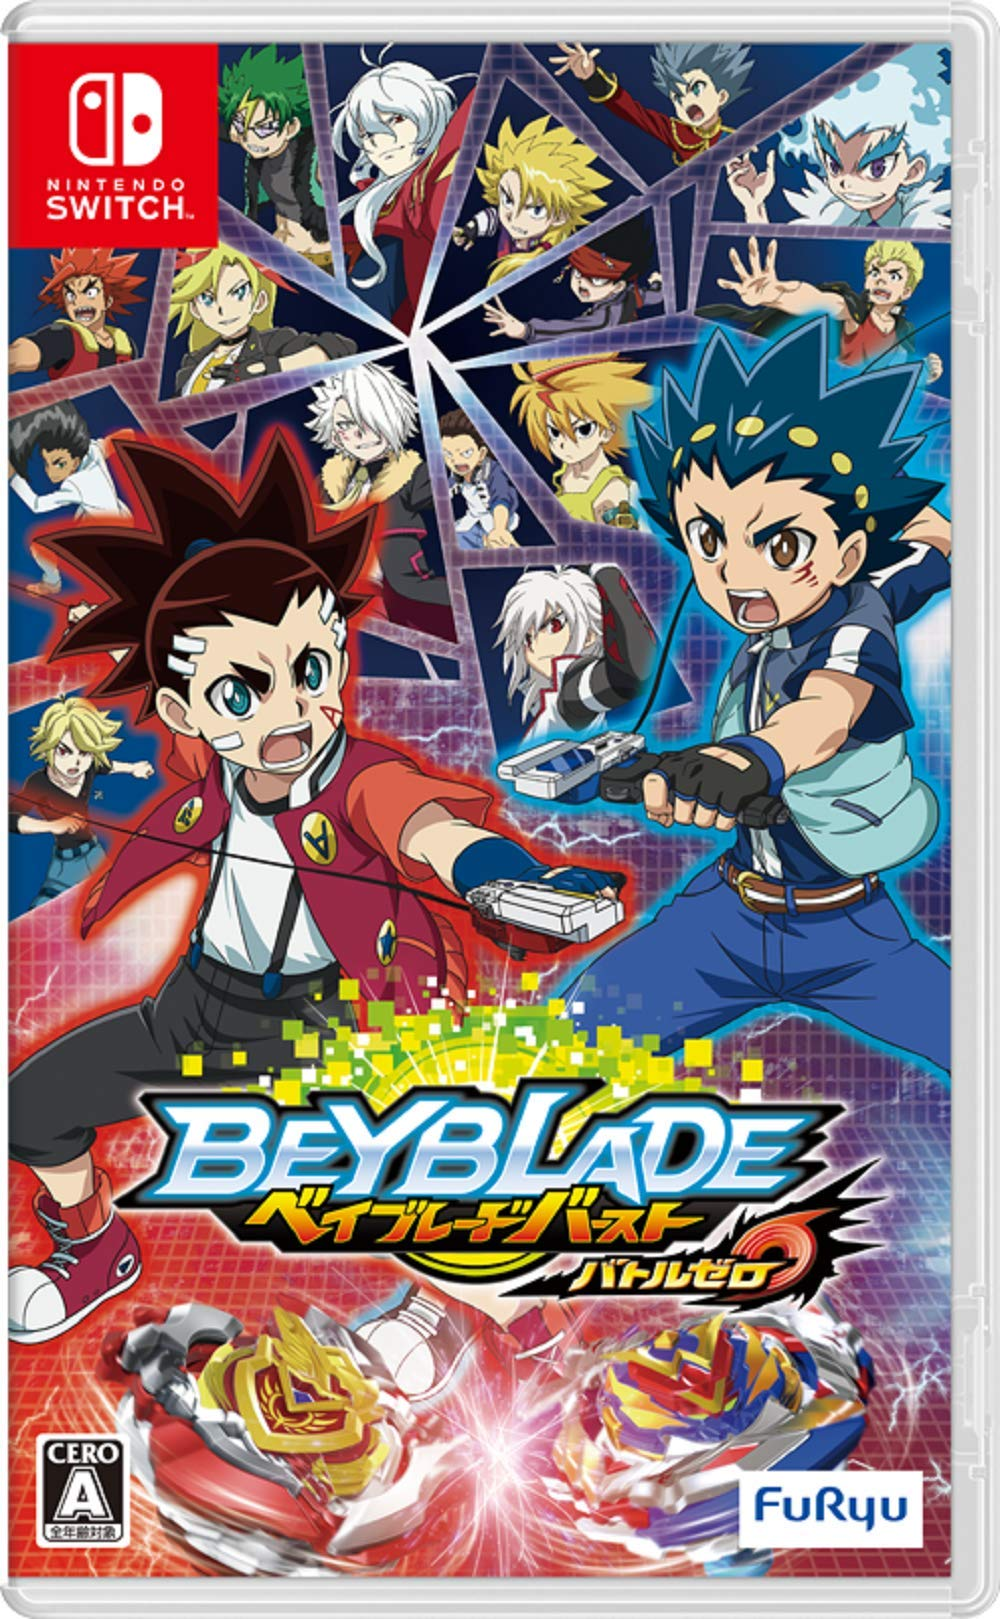 Beyblade Burst Battle Zero - Switch Japanese Ver. (【Benefit】 Game Limited Beyblade included) by FURYU